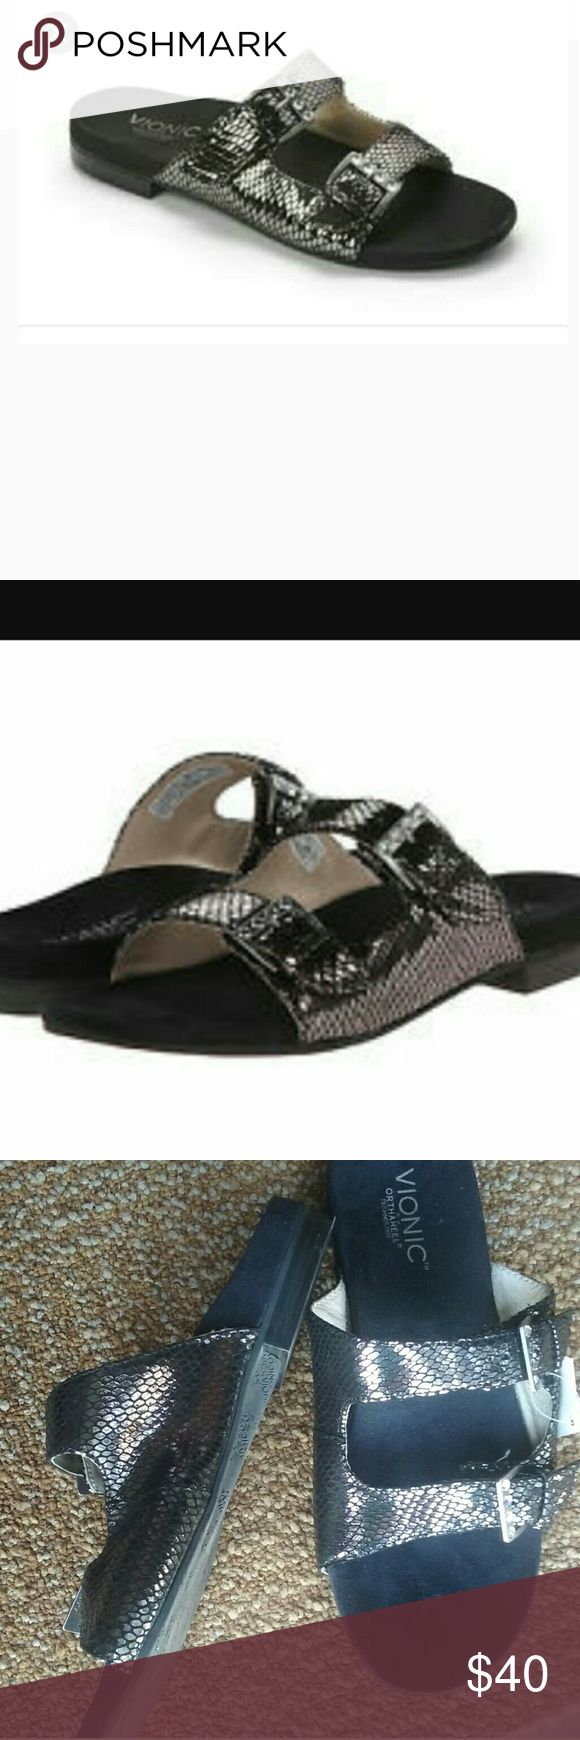 Vionic  black patent and pewter sandal Carina , black snake pewter upper leather double strap buckle with Crystal detail on each one size 9.5 brand new never worn I do not have the original box Vionic Shoes Sandals